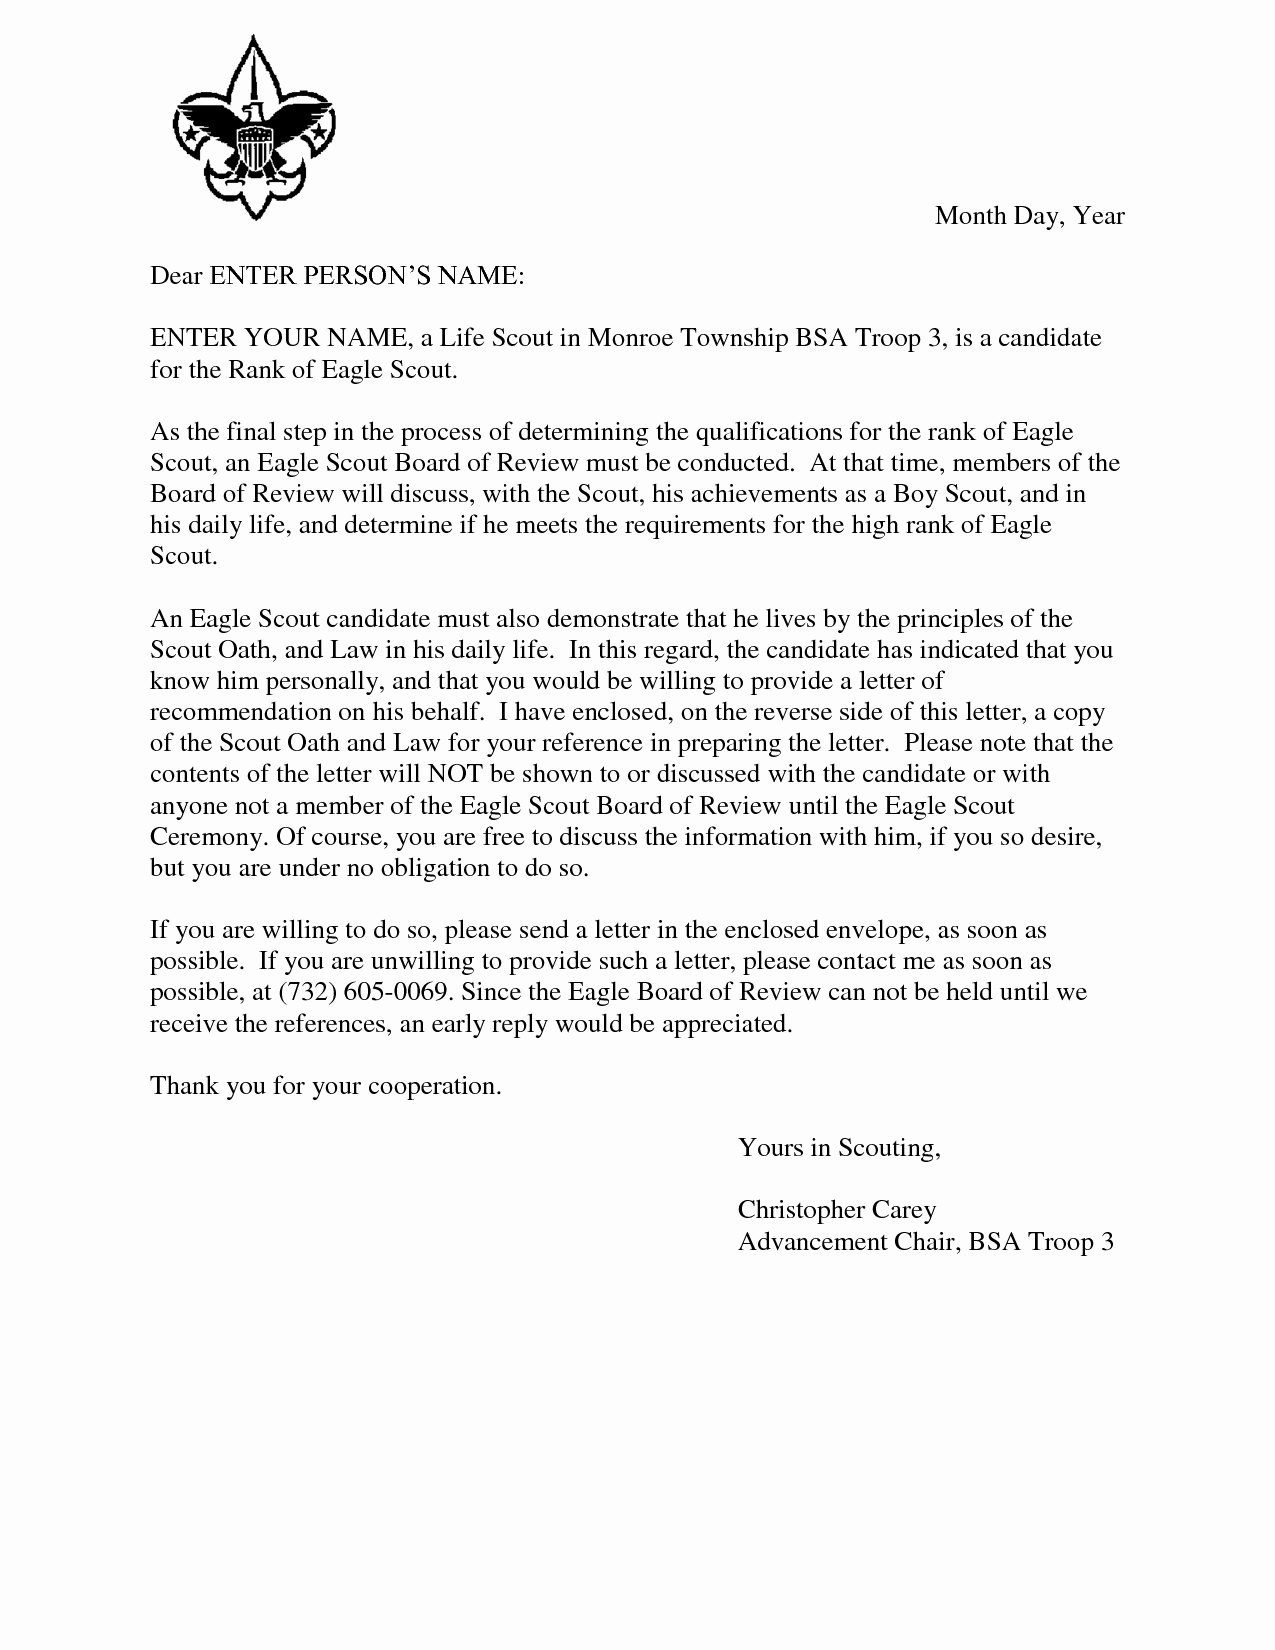 Sample Eagle Scout Recommendation Letter Lovely Eagle Scout Reference Request Sample Letter Doc 7 by